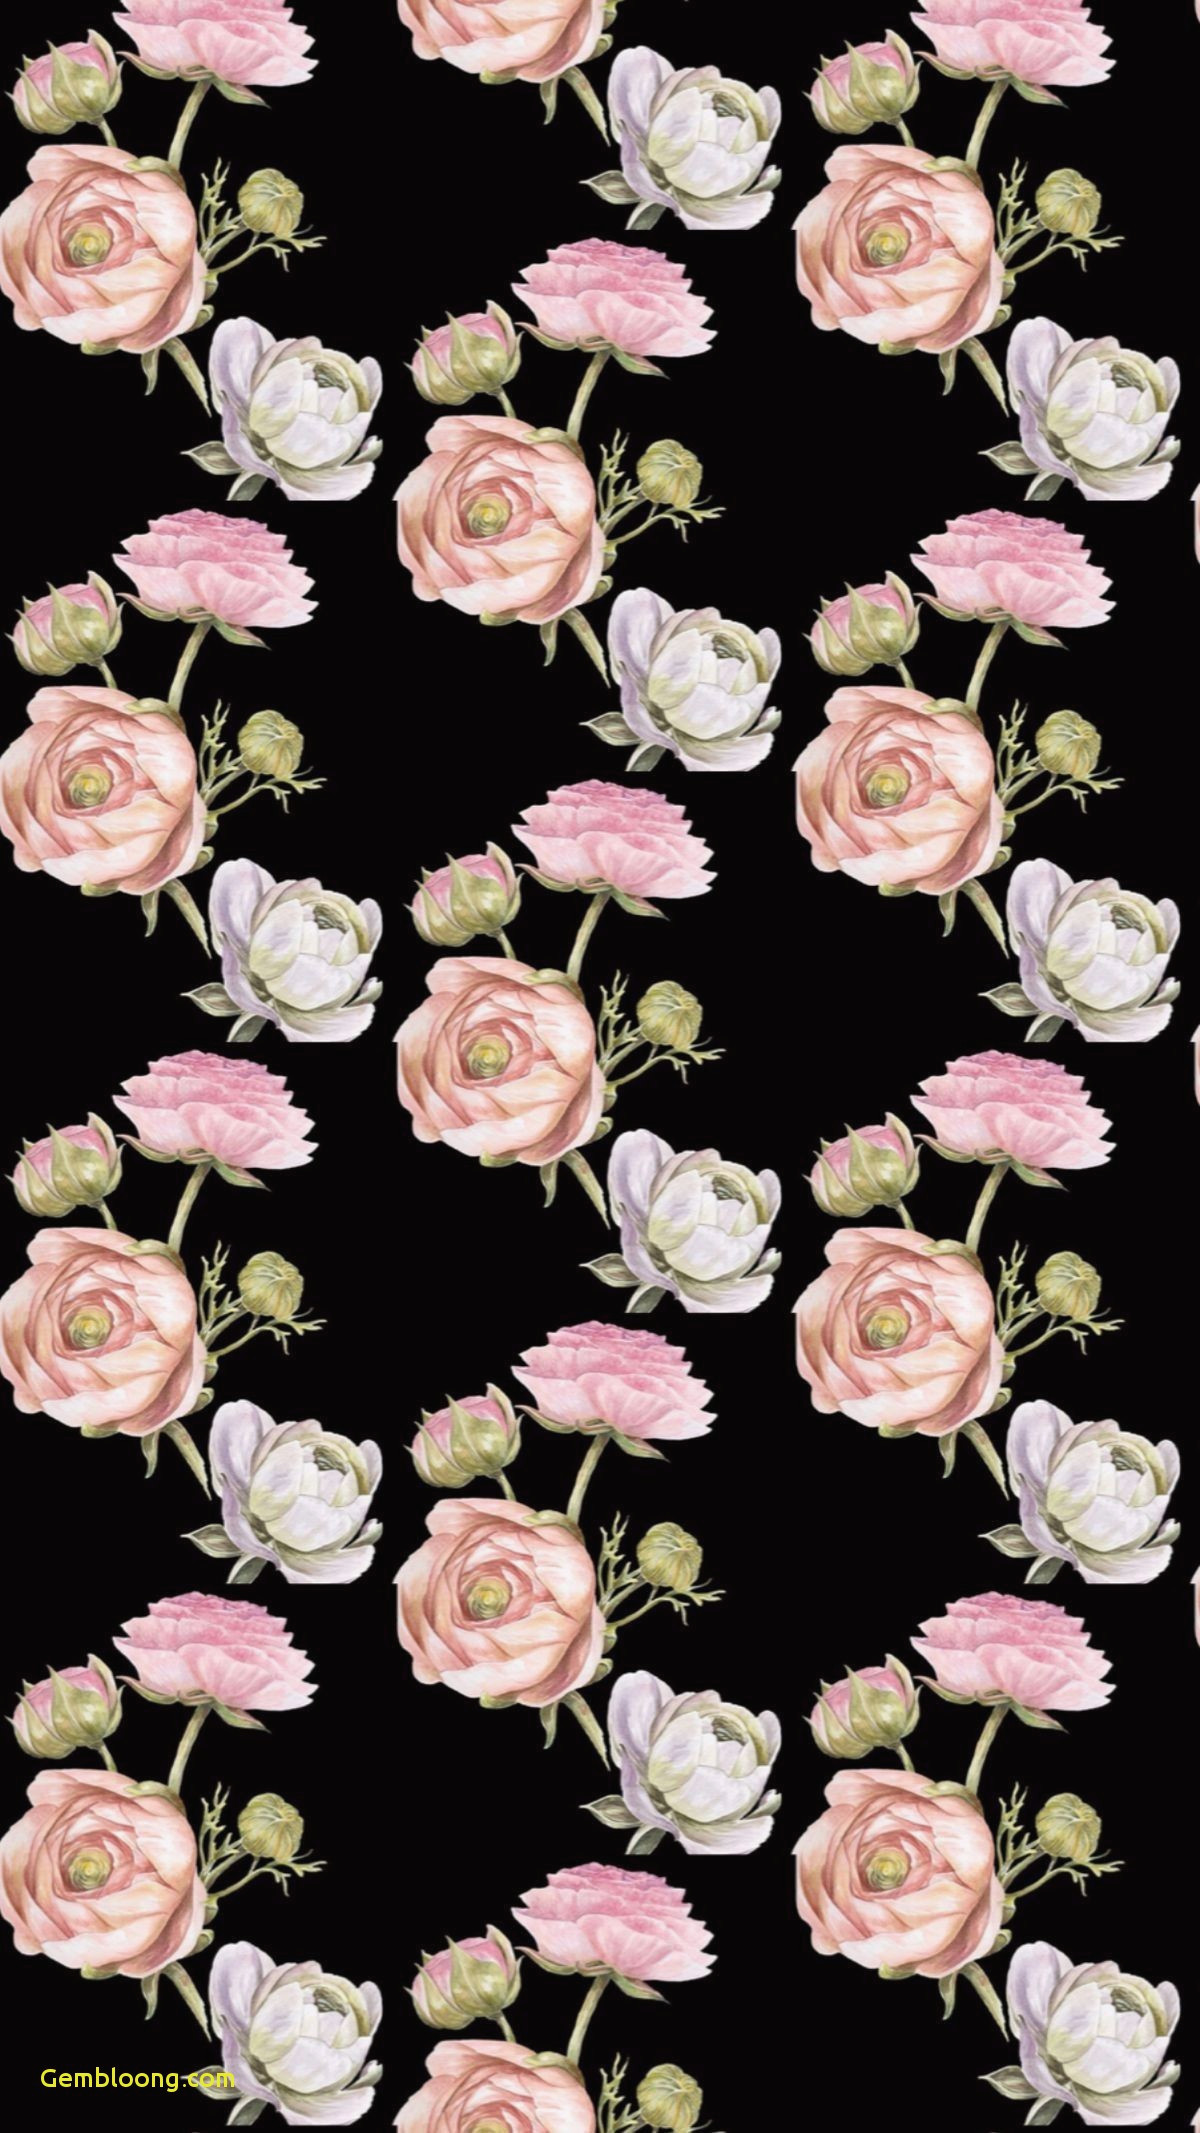 Big Cute Rose Gold Wallpapers On Wallpaperdog